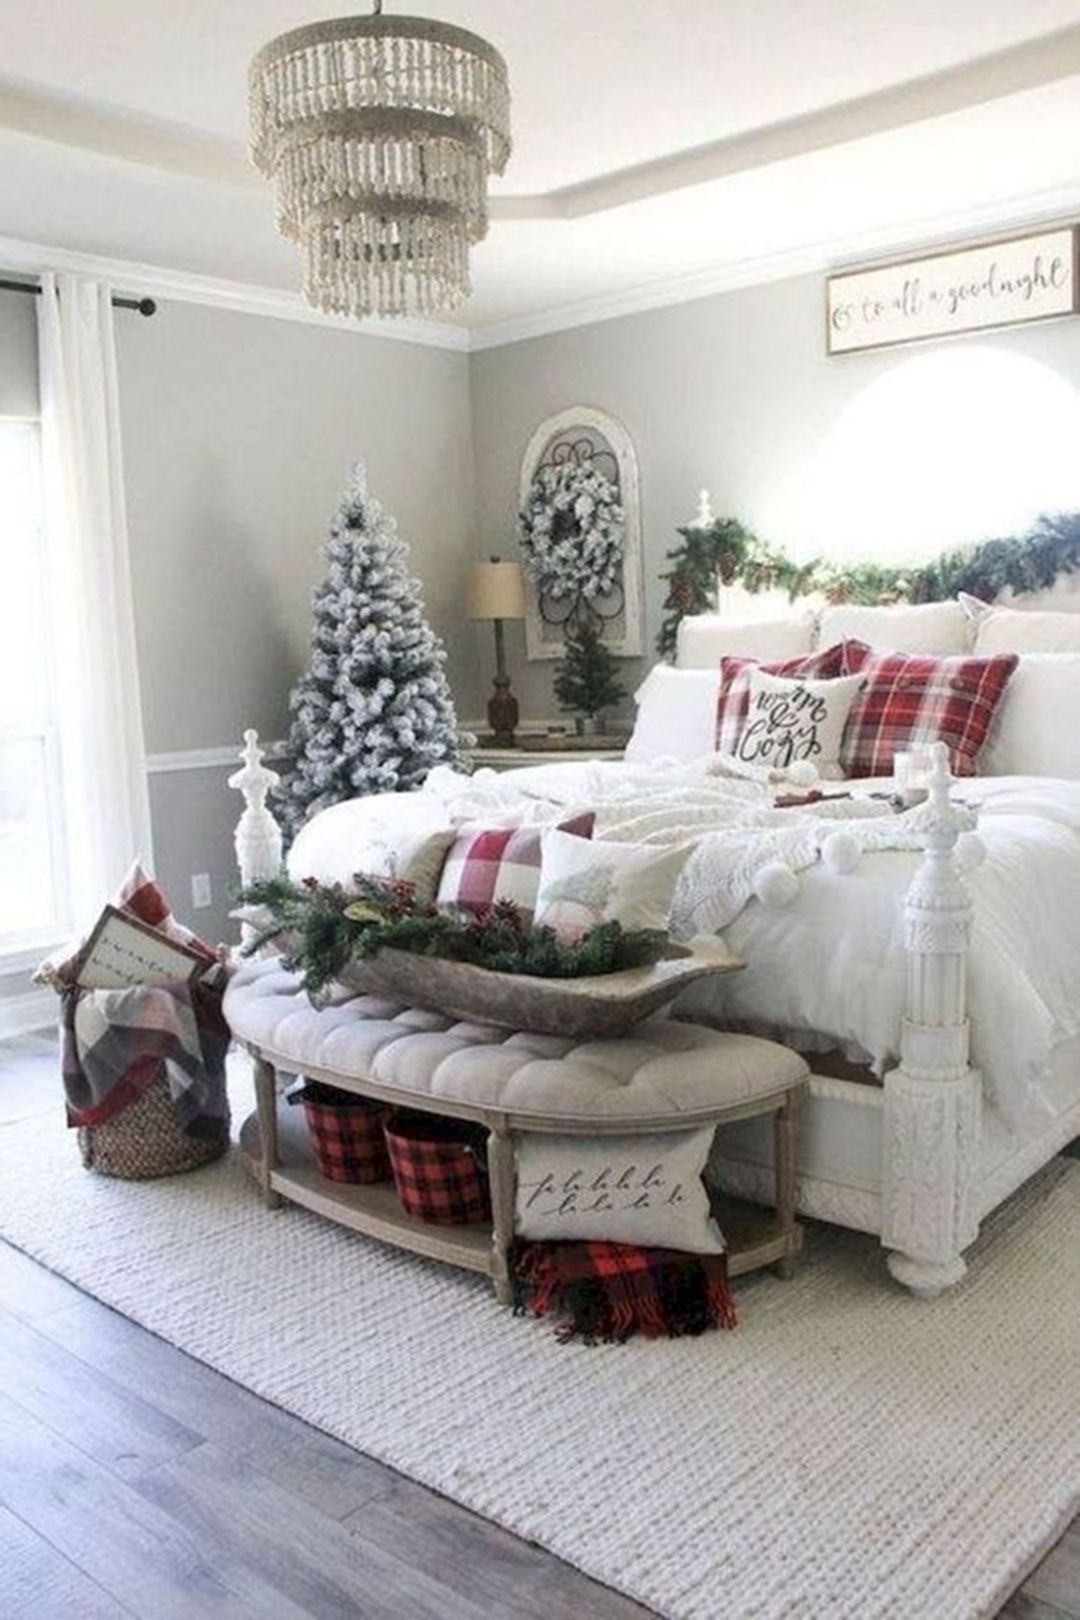 Make Your Bedroom More Beautiful With 15 The Best Decorations Decor It S Christmas Room Decor Christmas Room Christmas Home